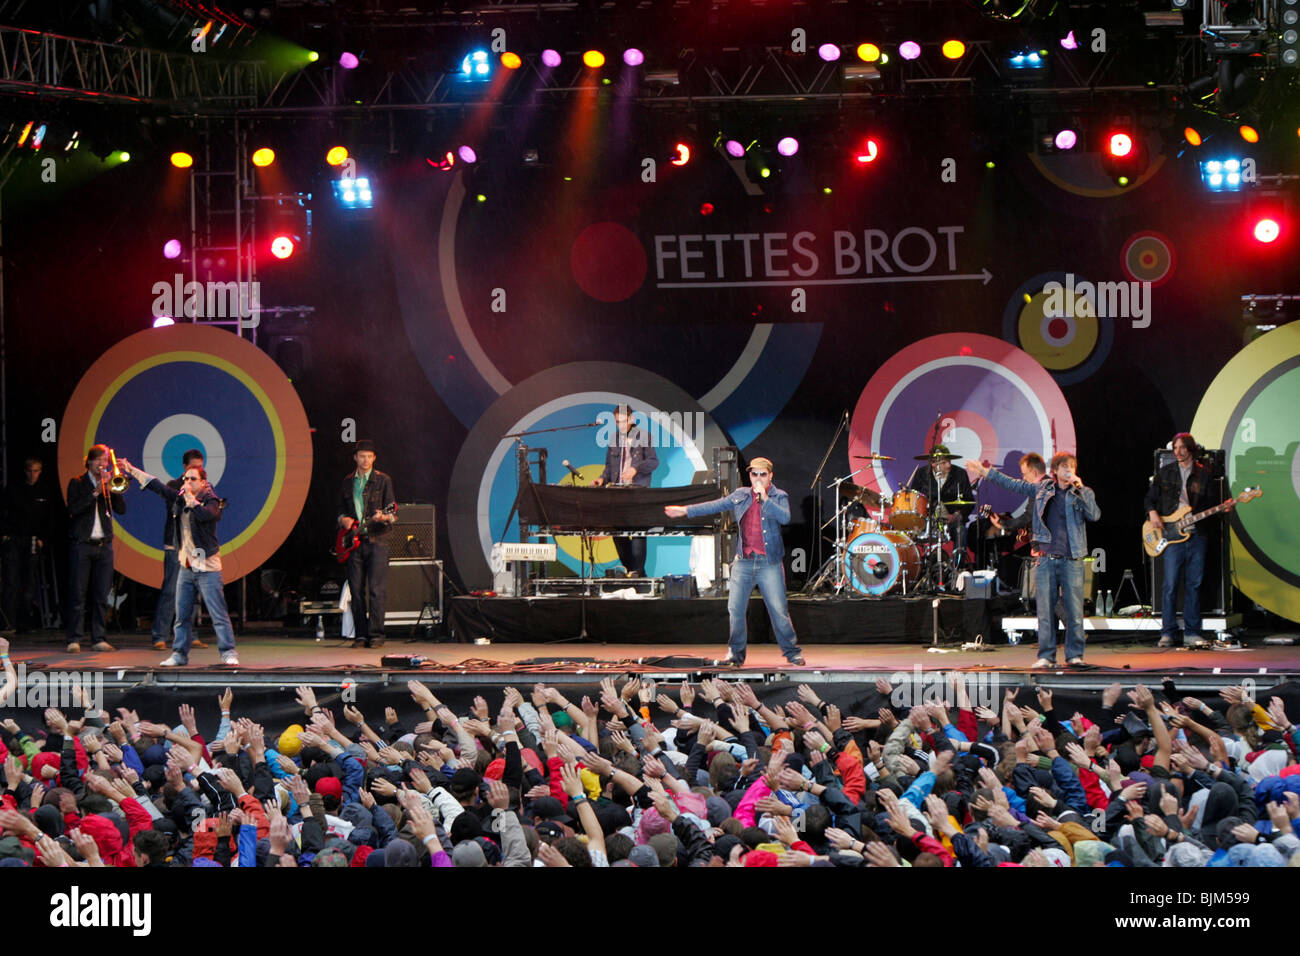 The German hip hop band Fettes Brot live at the Heitere Open Air in Zofingen, Aargau, Switzerland Stock Photo